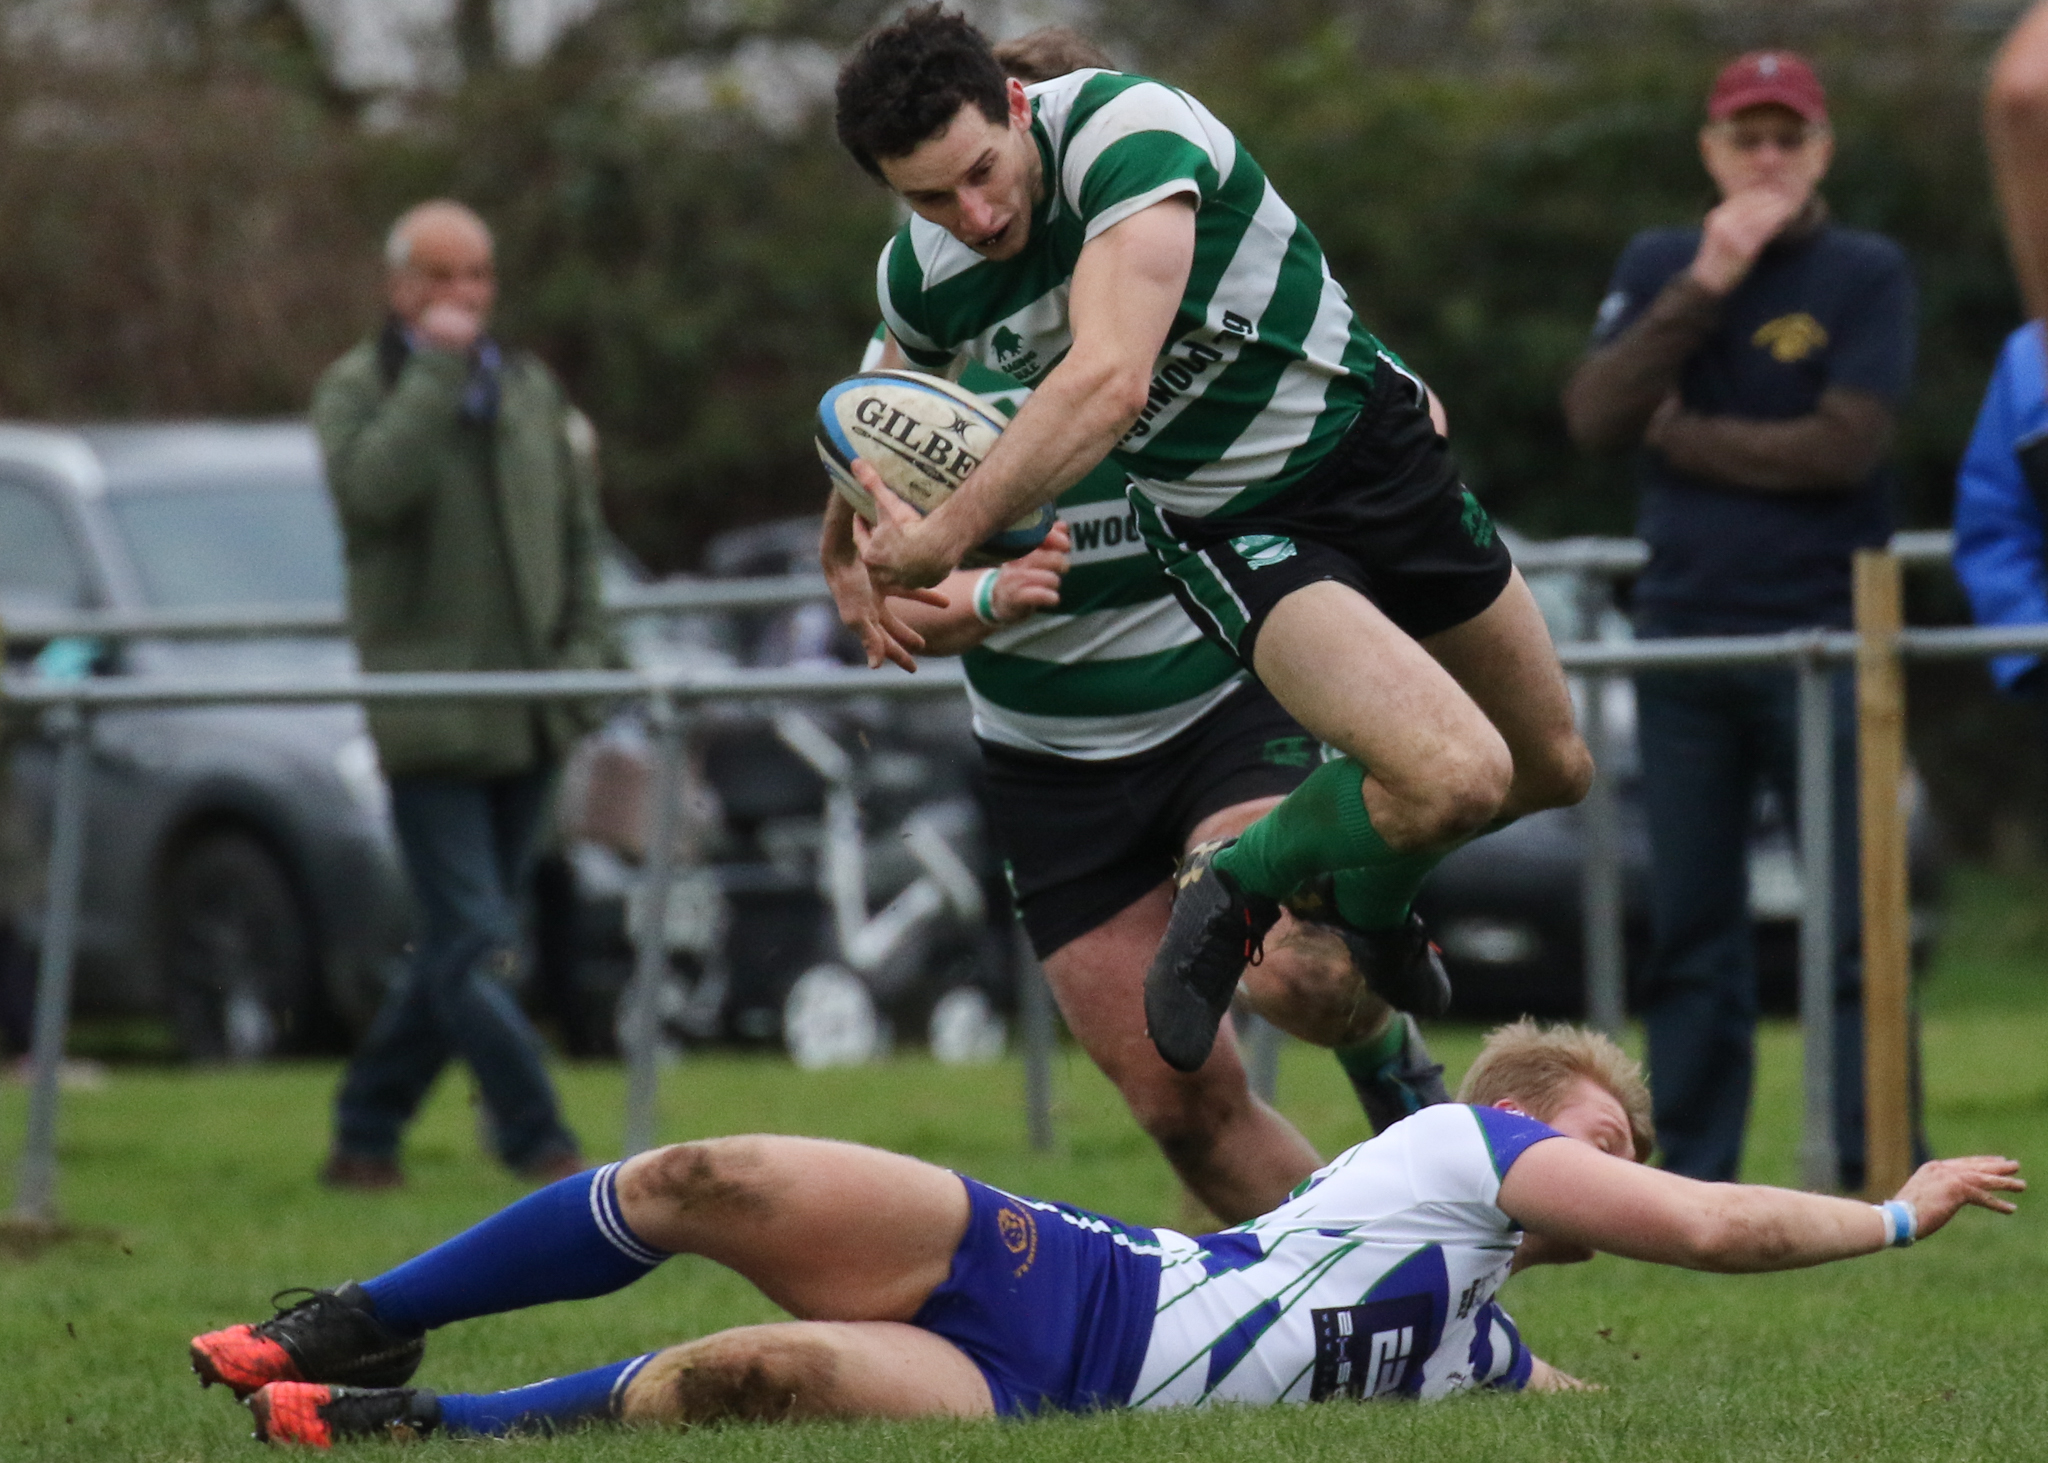 FLASH OF INSPIRATION: Dorchester's Harry Charlier scored two tries    Picture: PHILLIP STANDFIELD